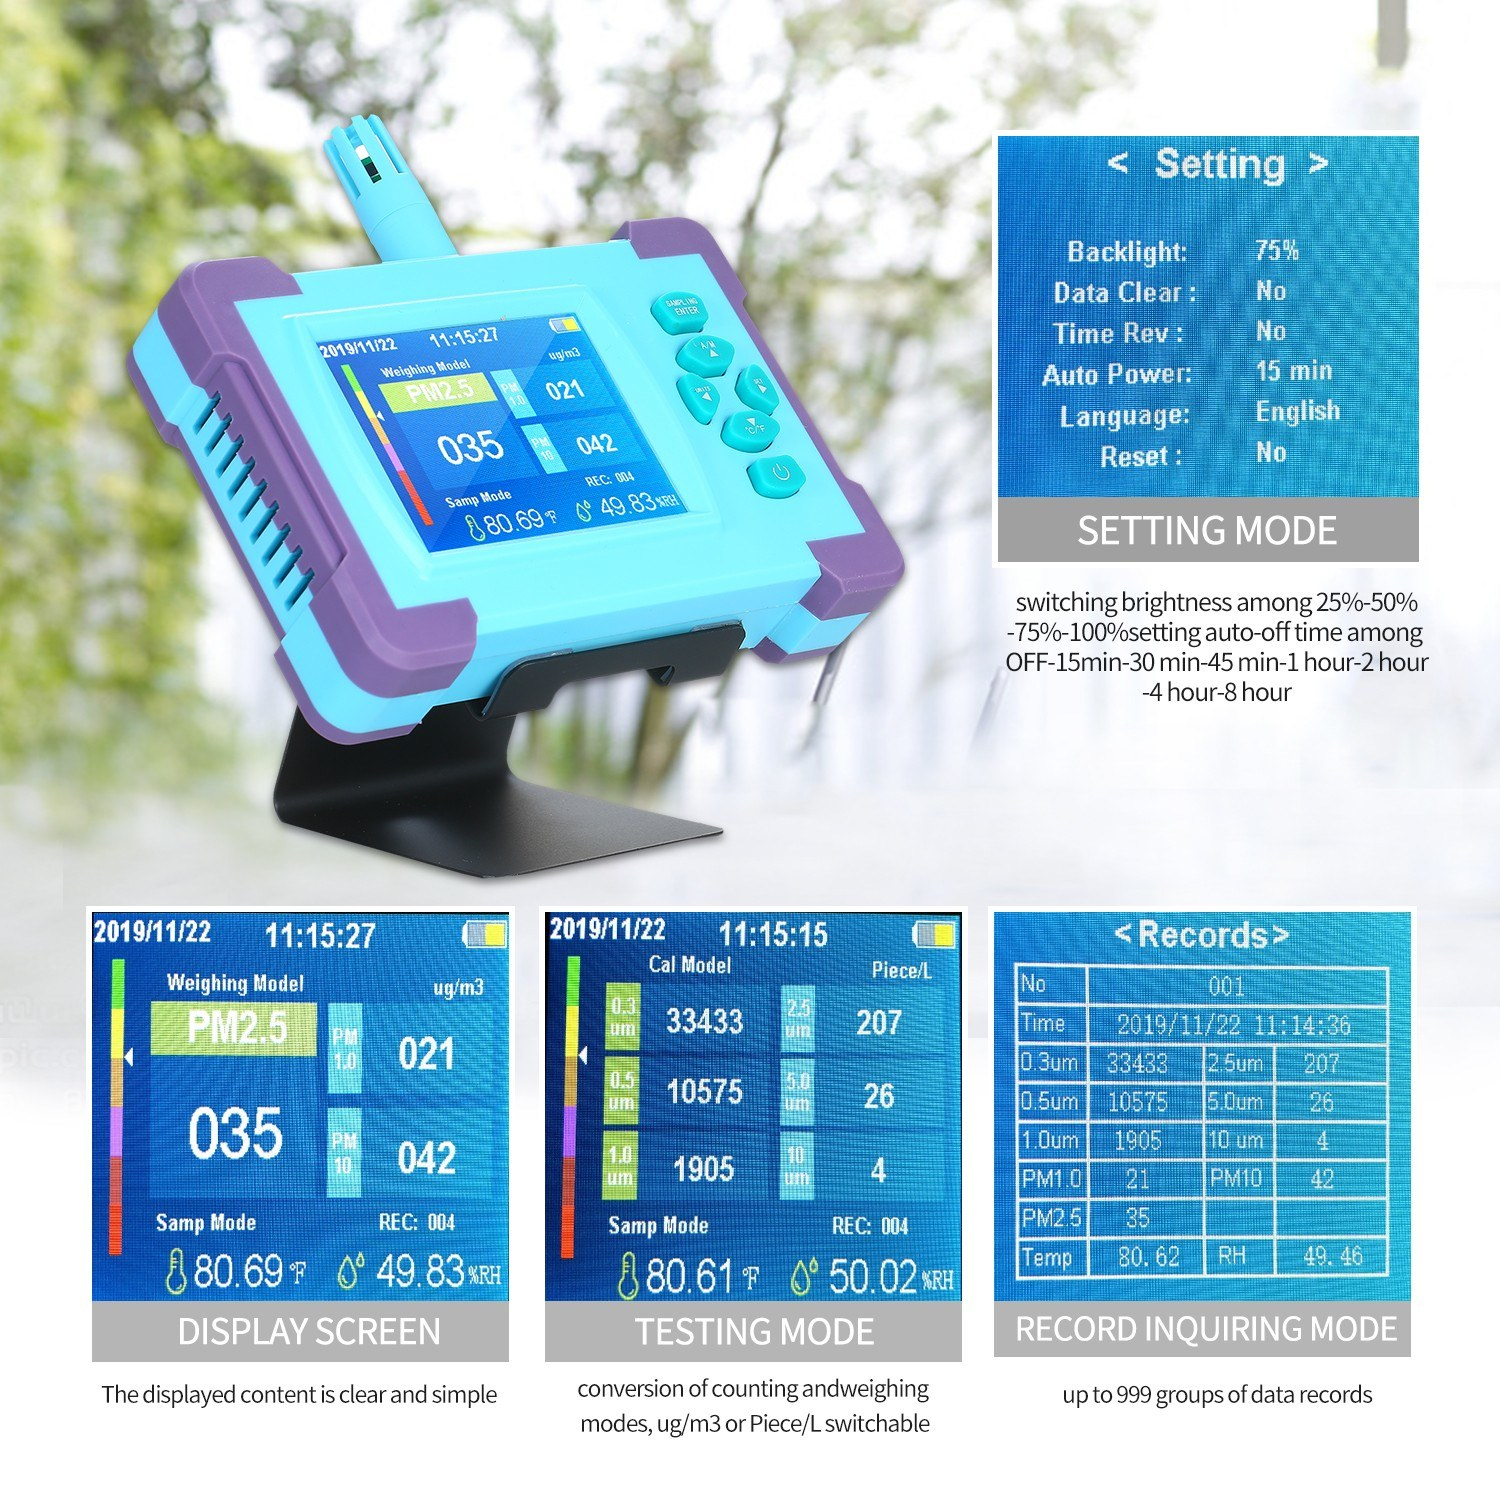 PM1.0/PM2.5/PM10 Air Quality Monitor Digital Gas Analyzer Rechargeable Battery Portable High-precision Sensor Air Detector Home LED Display Temp And Humidity Test Equipment